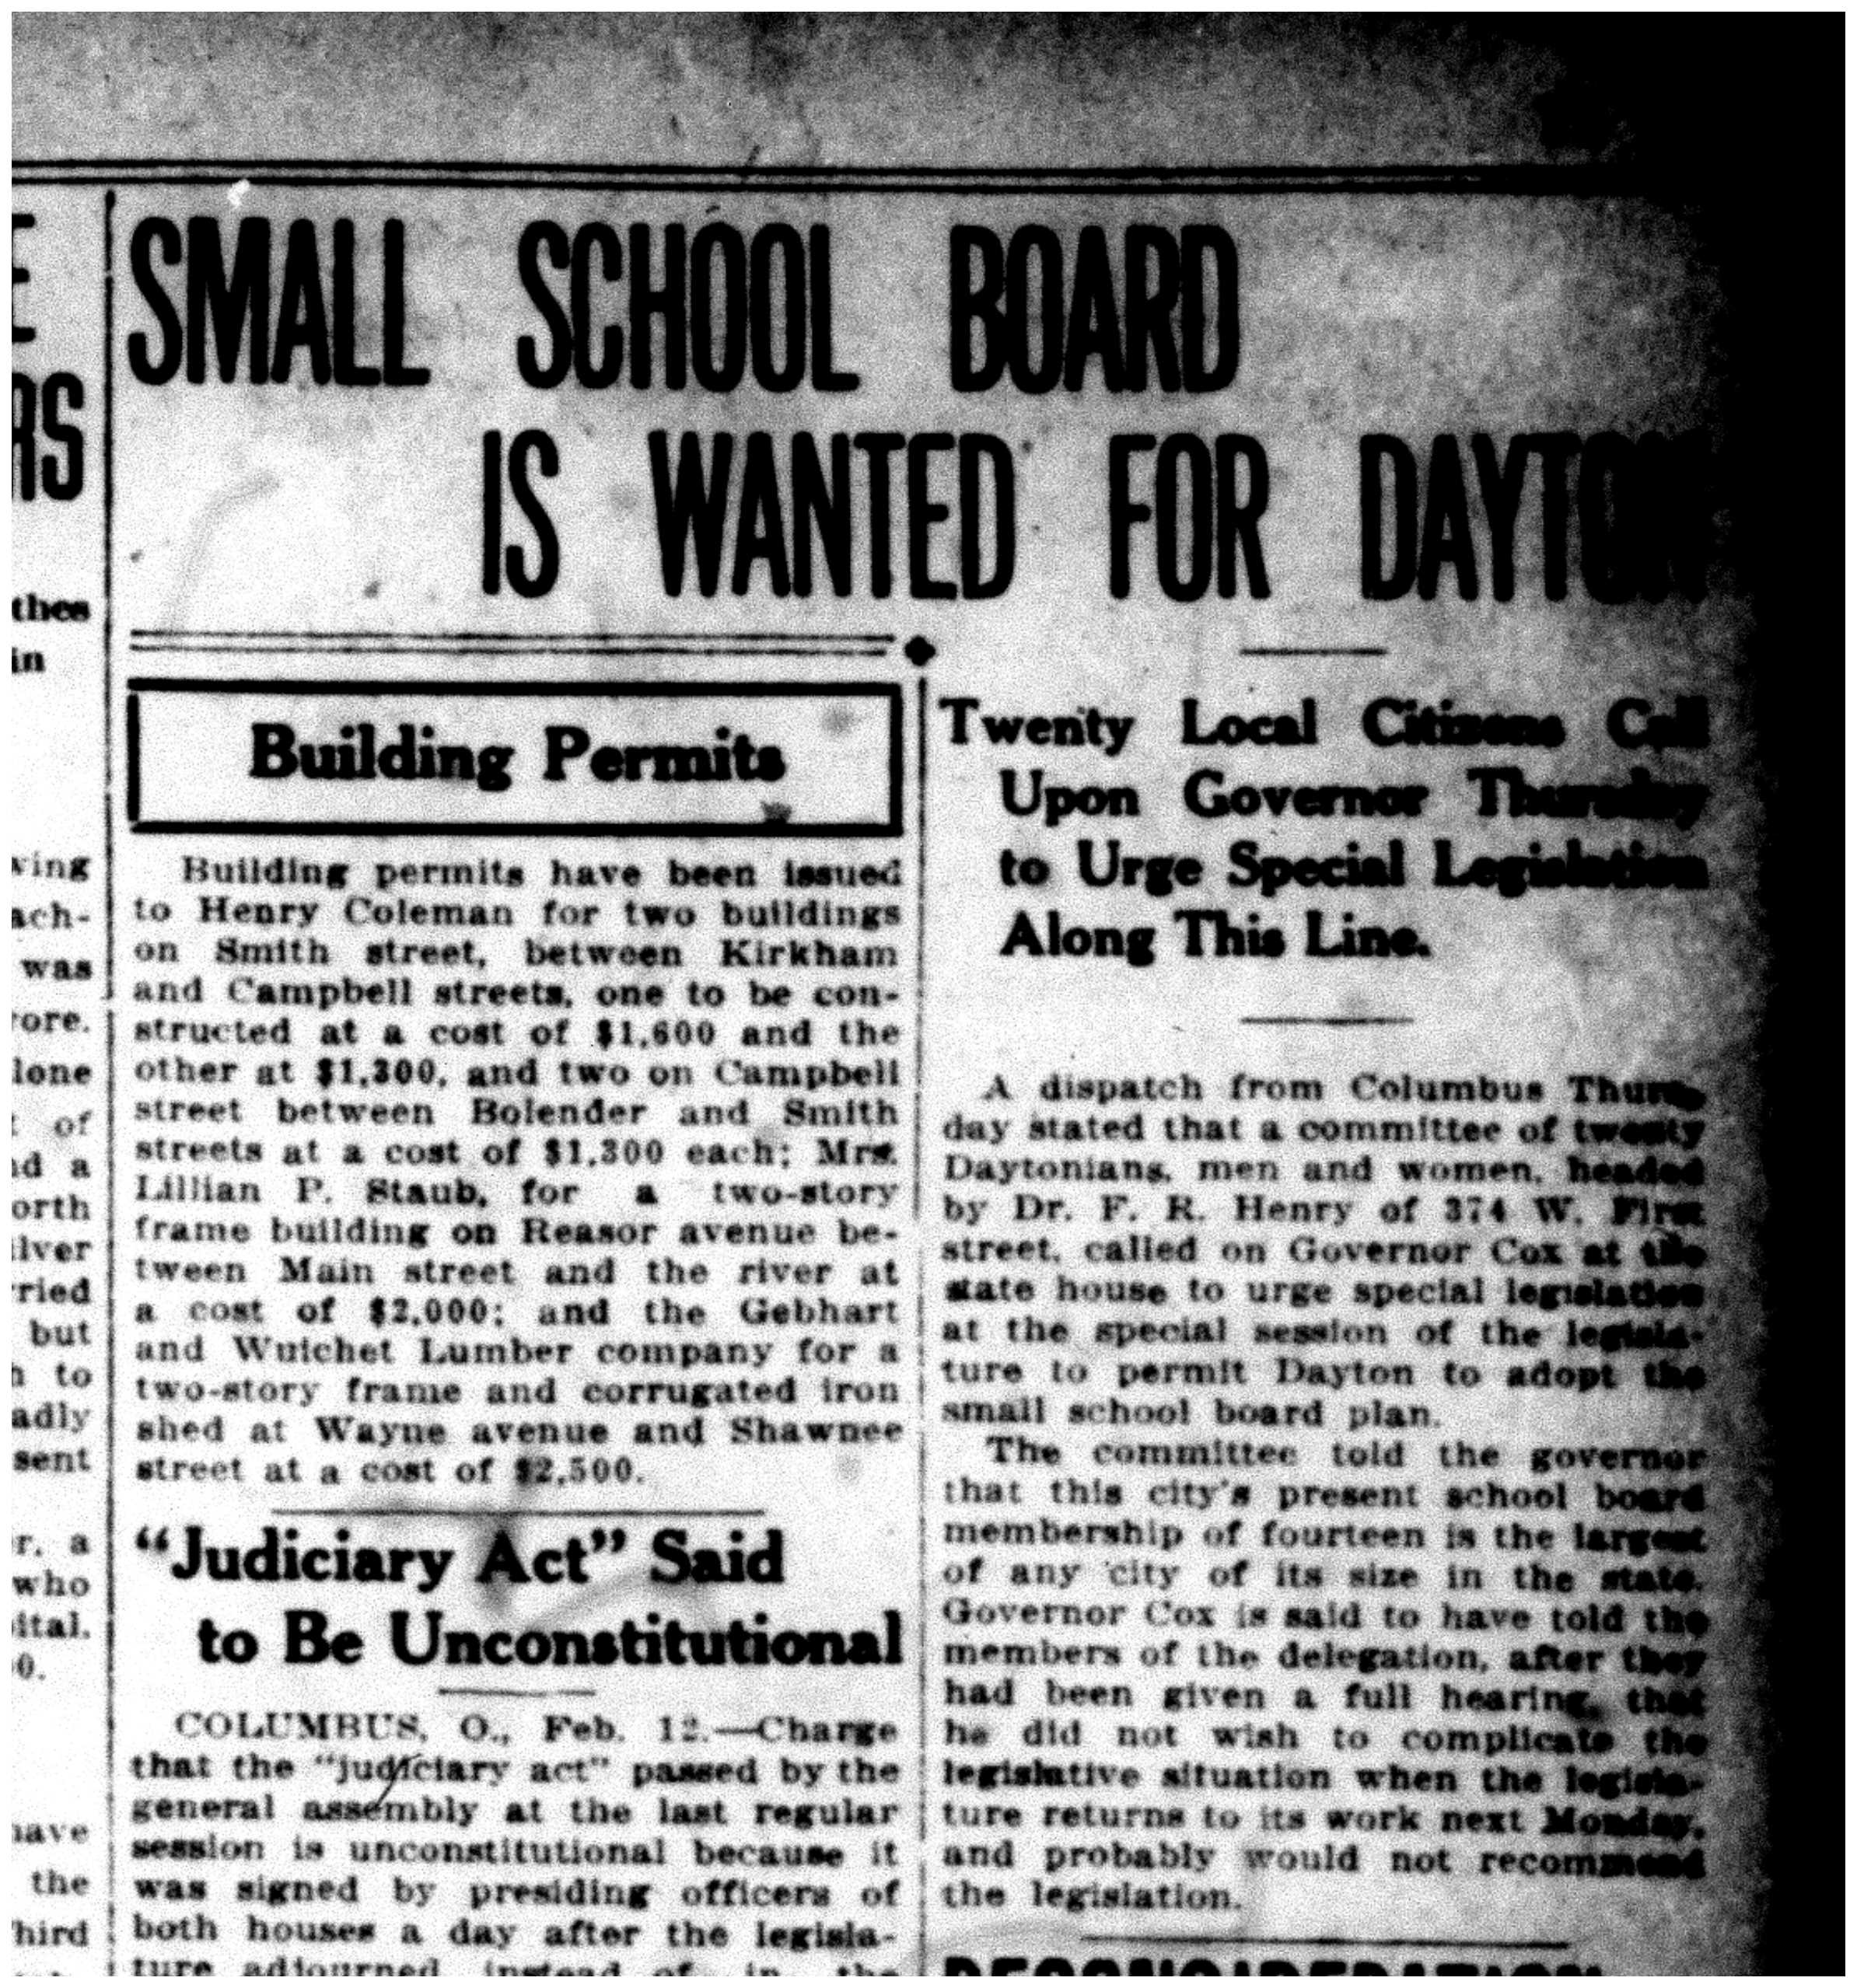 Small School Board is Wanted for Dayton, Dayton Daily News, Feb. 12, 1914